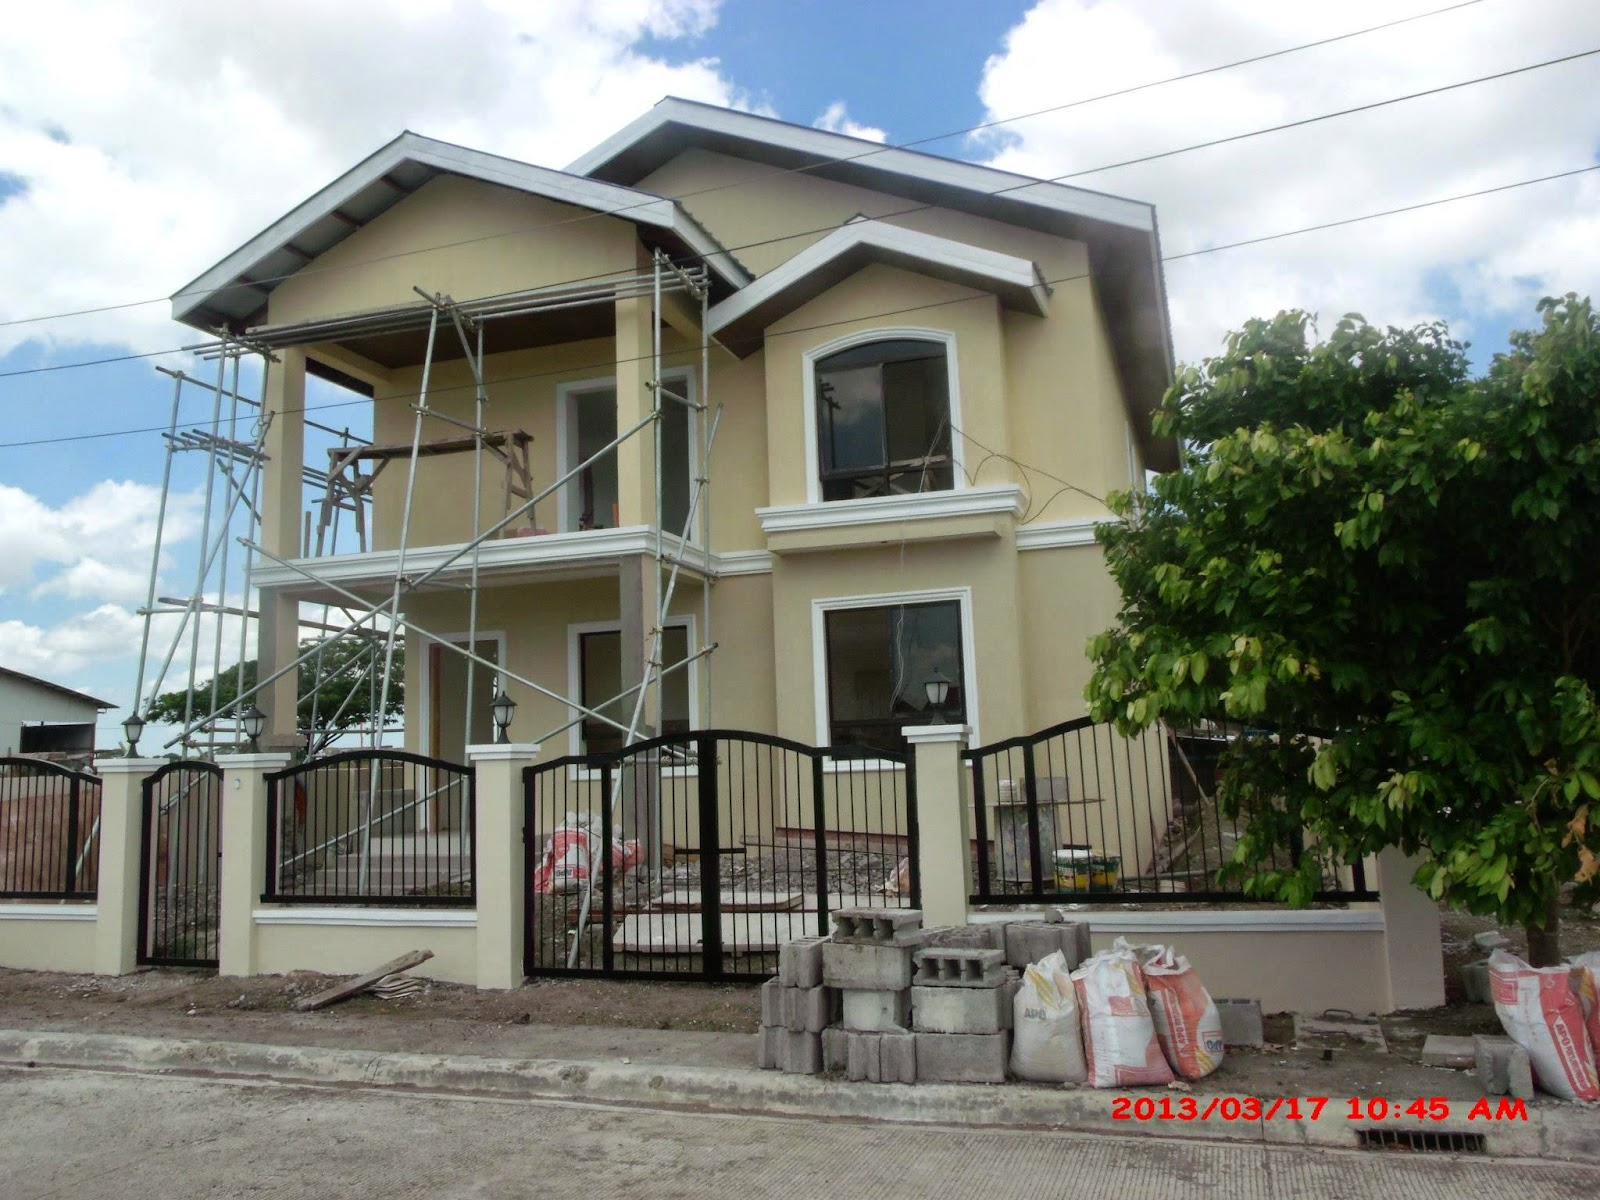 Savannah trails house construction project in oton iloilo for Home construction design